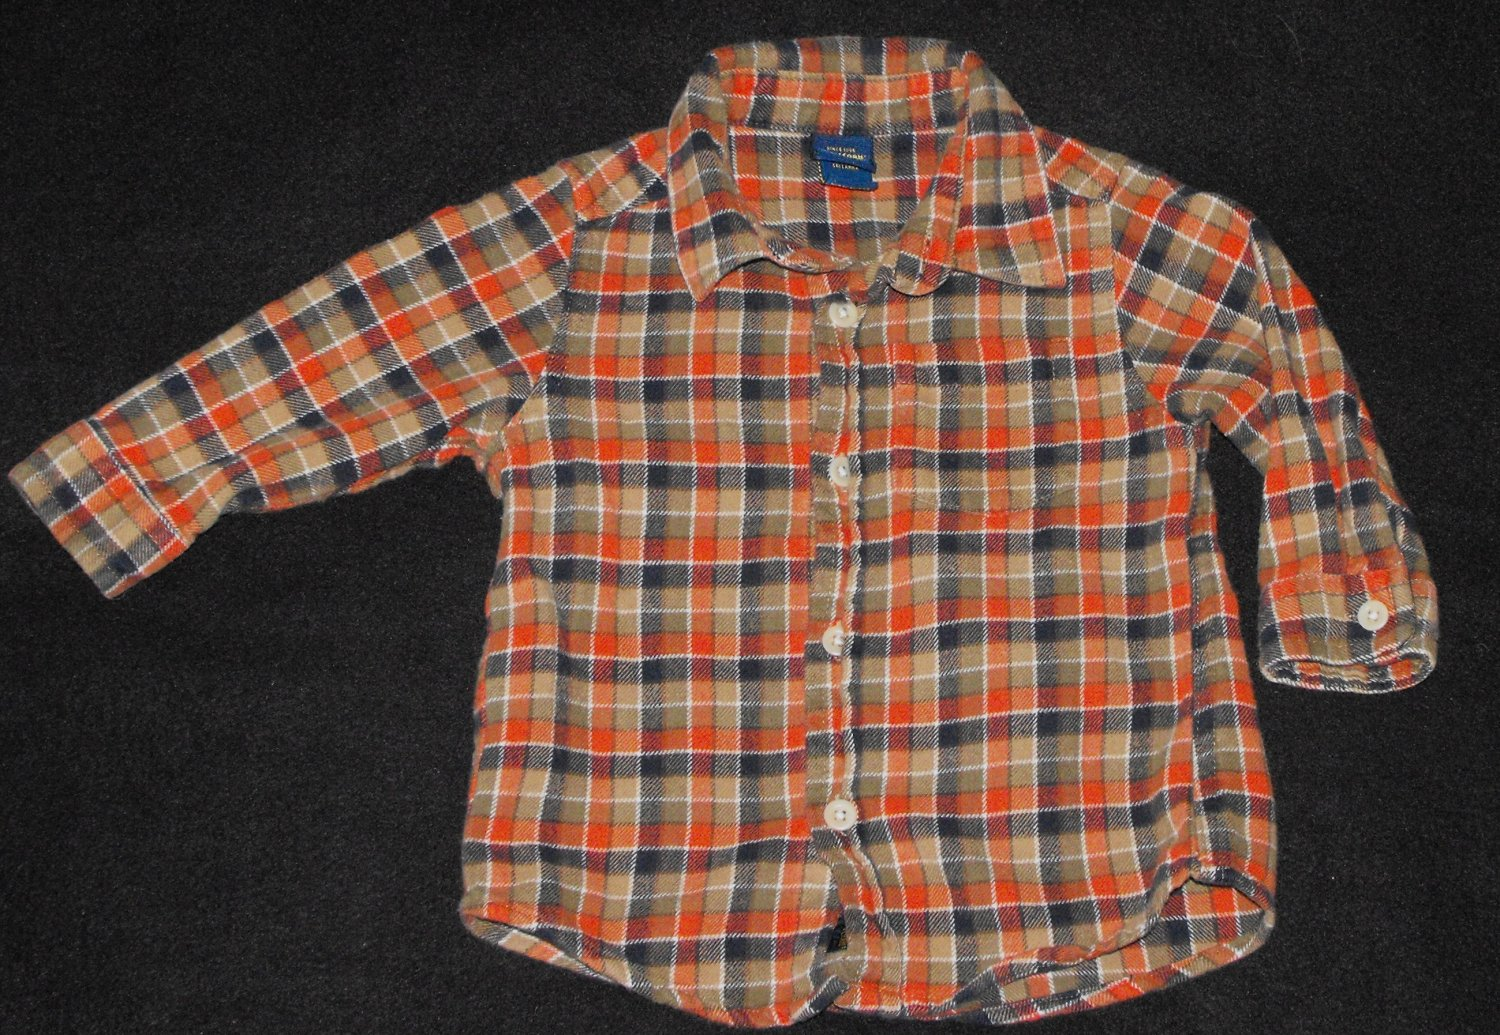 Osh Kosh Baby Boys 18-24 Months Plaid Flannel Button Up Long-Sleeve Shirt